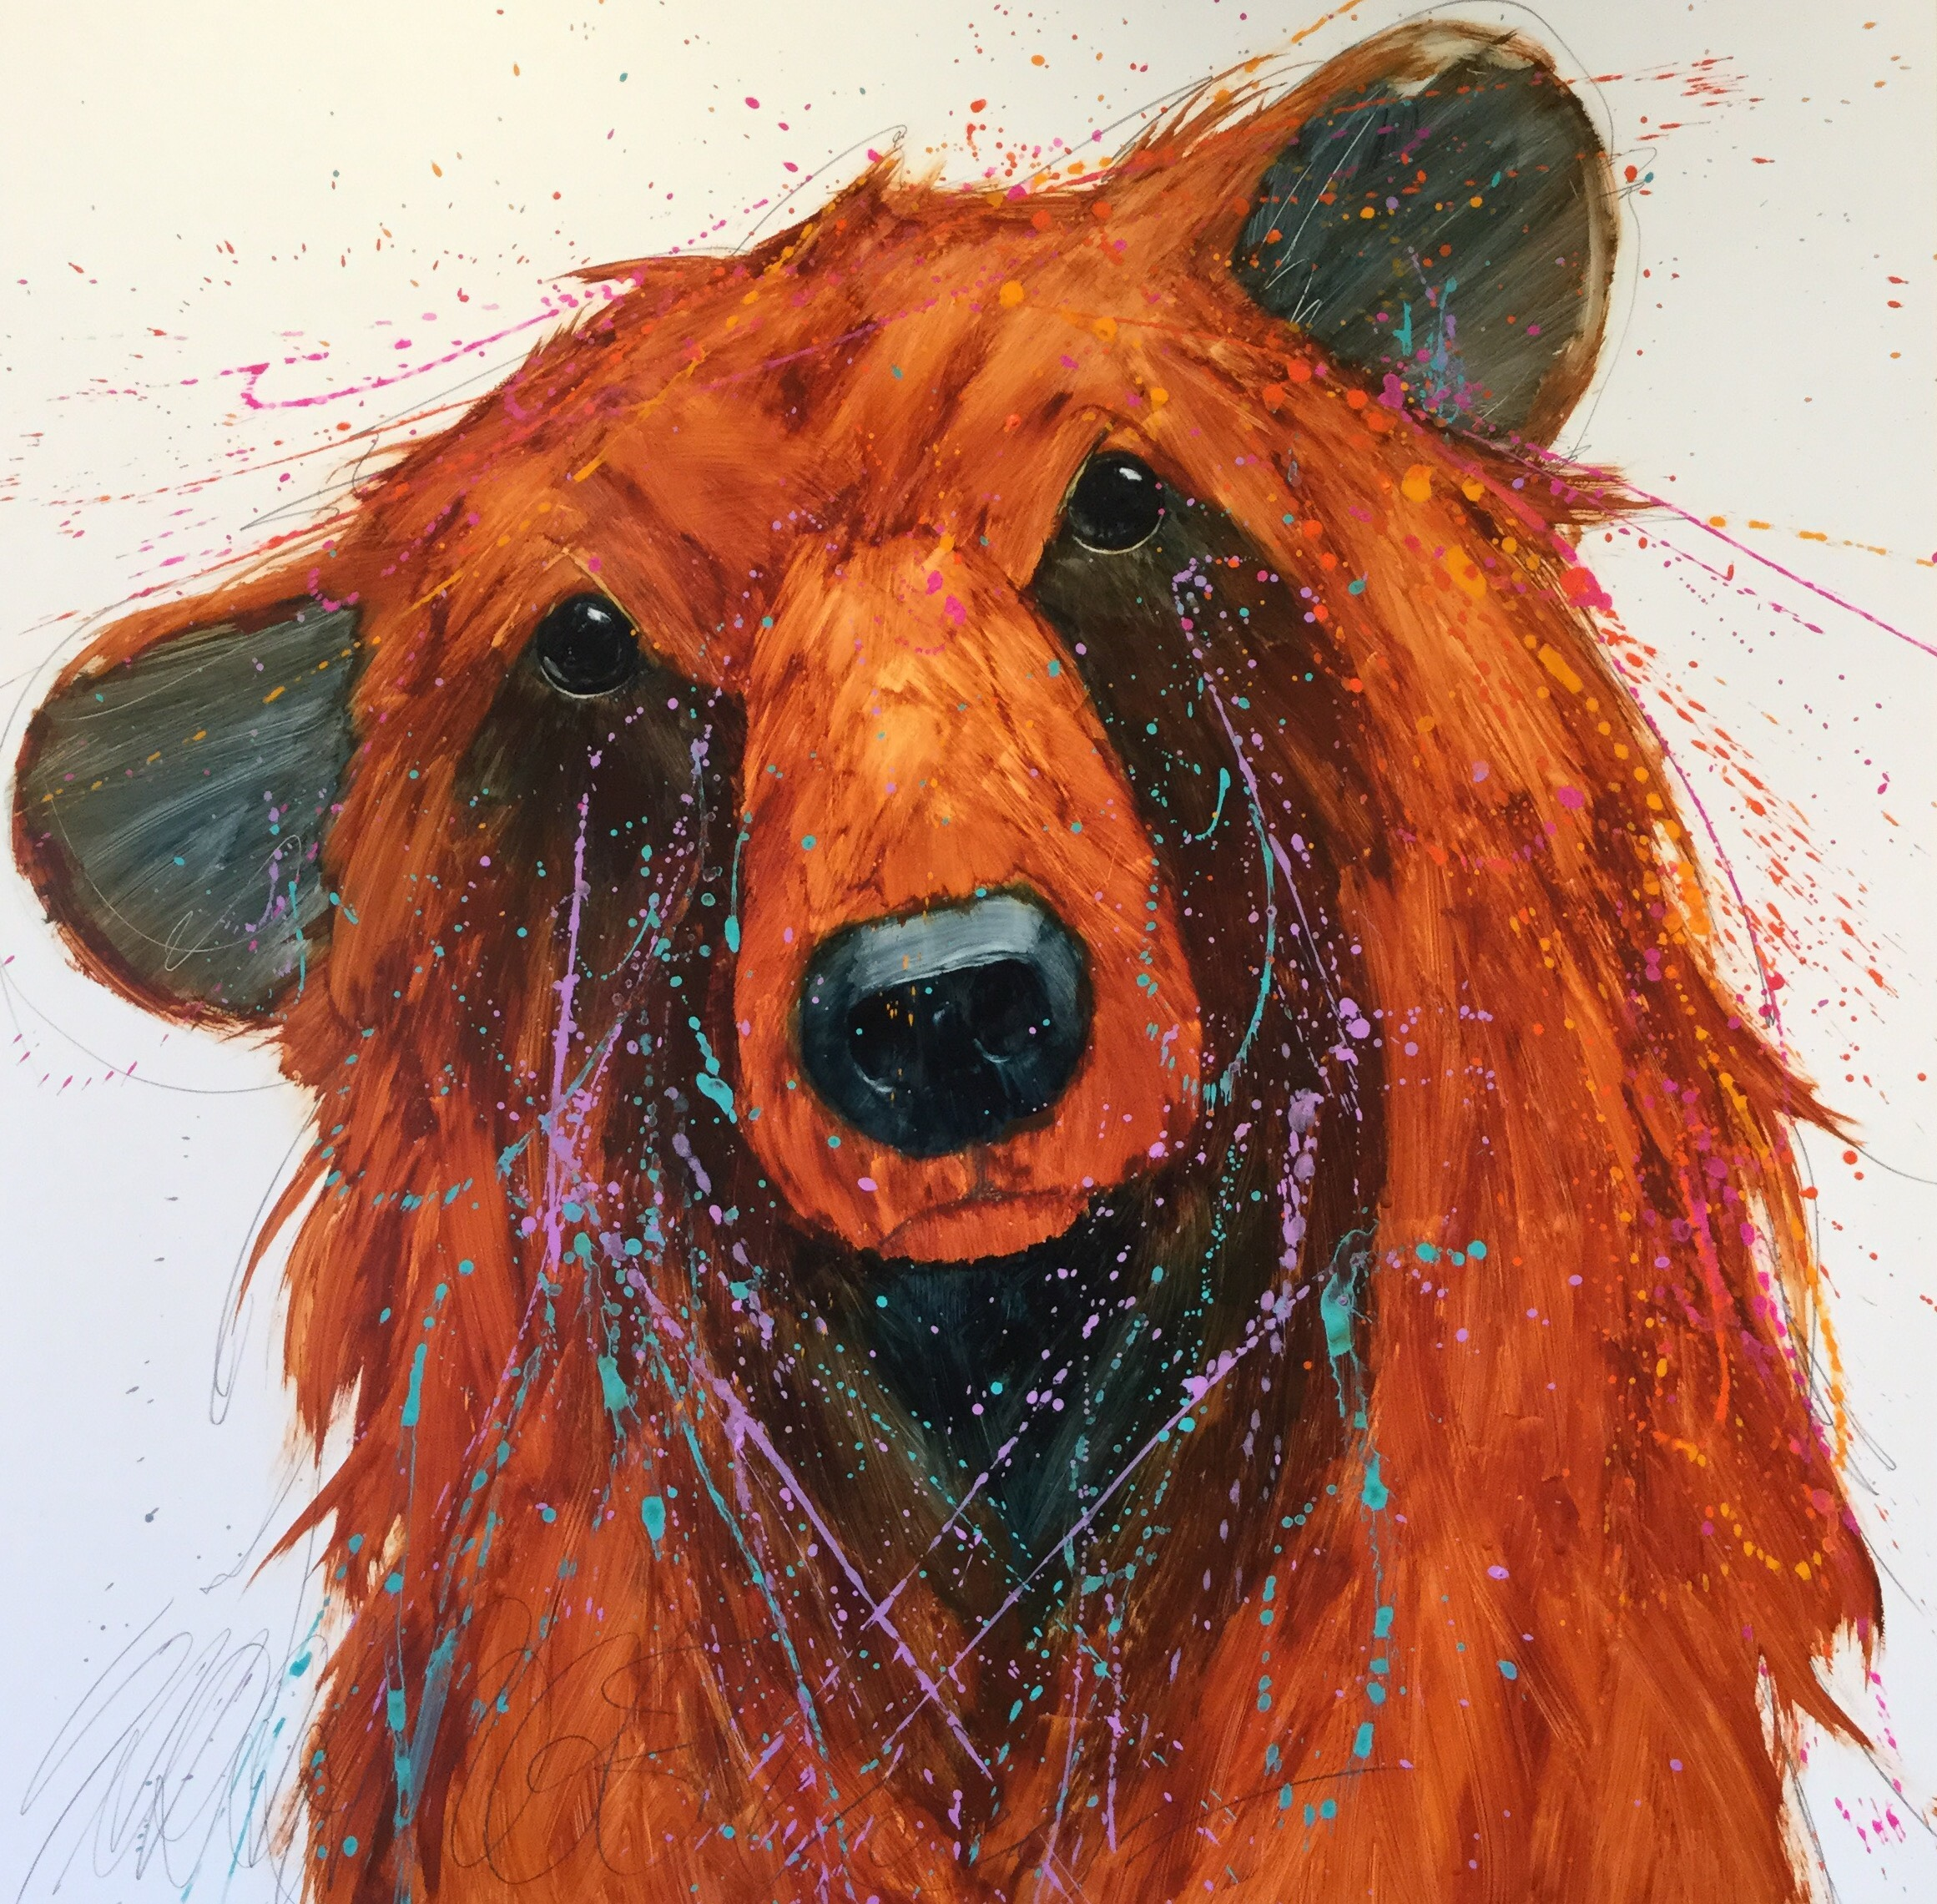 Freshly Scrubbed Bear - New Prints!